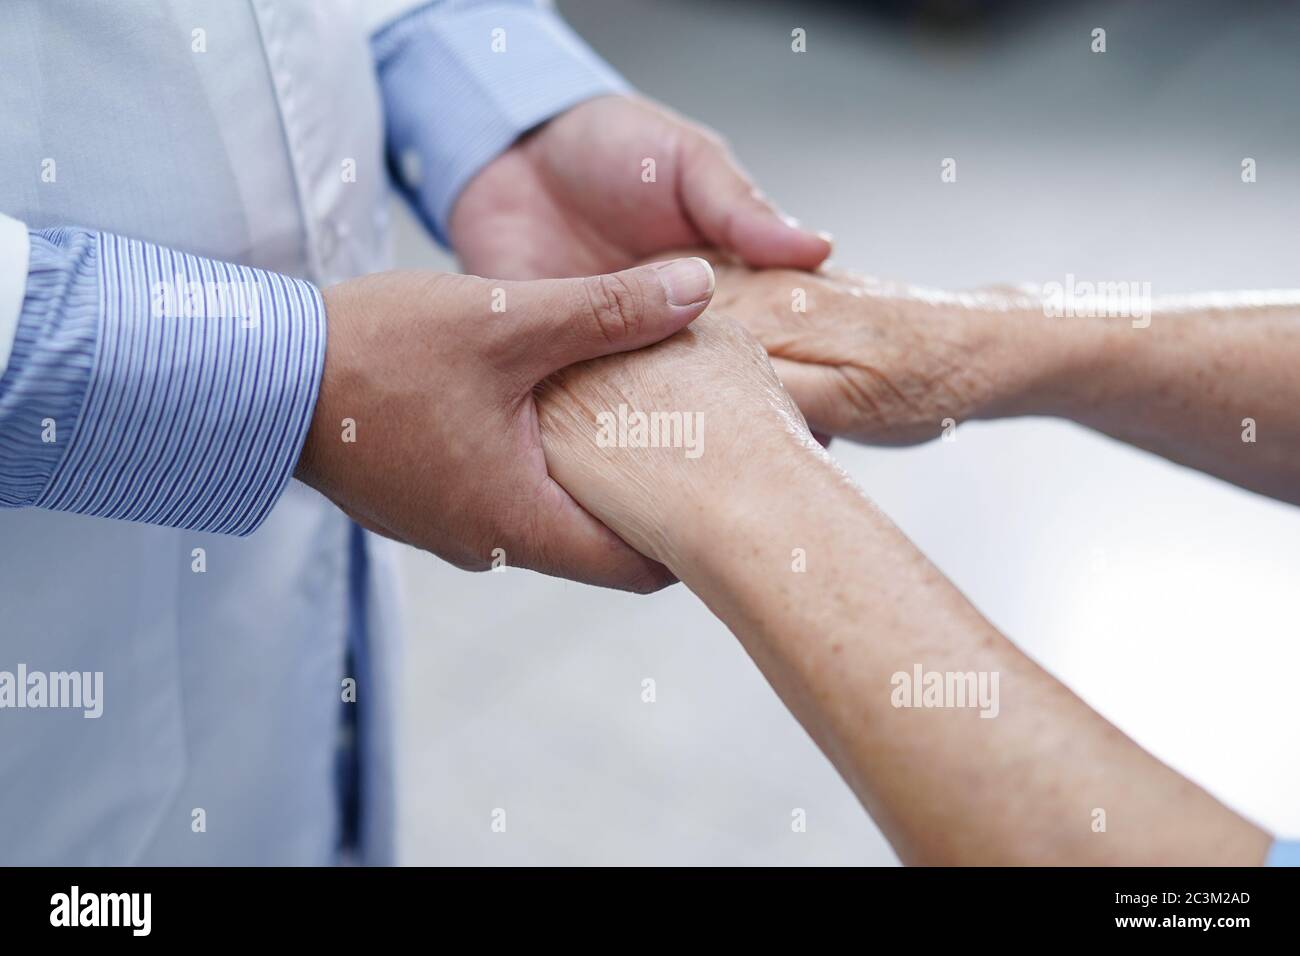 Holding Touching hands Asian senior or elderly old lady woman patient with love, care, helping, encourage and empathy at nursing hospital ward : healt Stock Photo